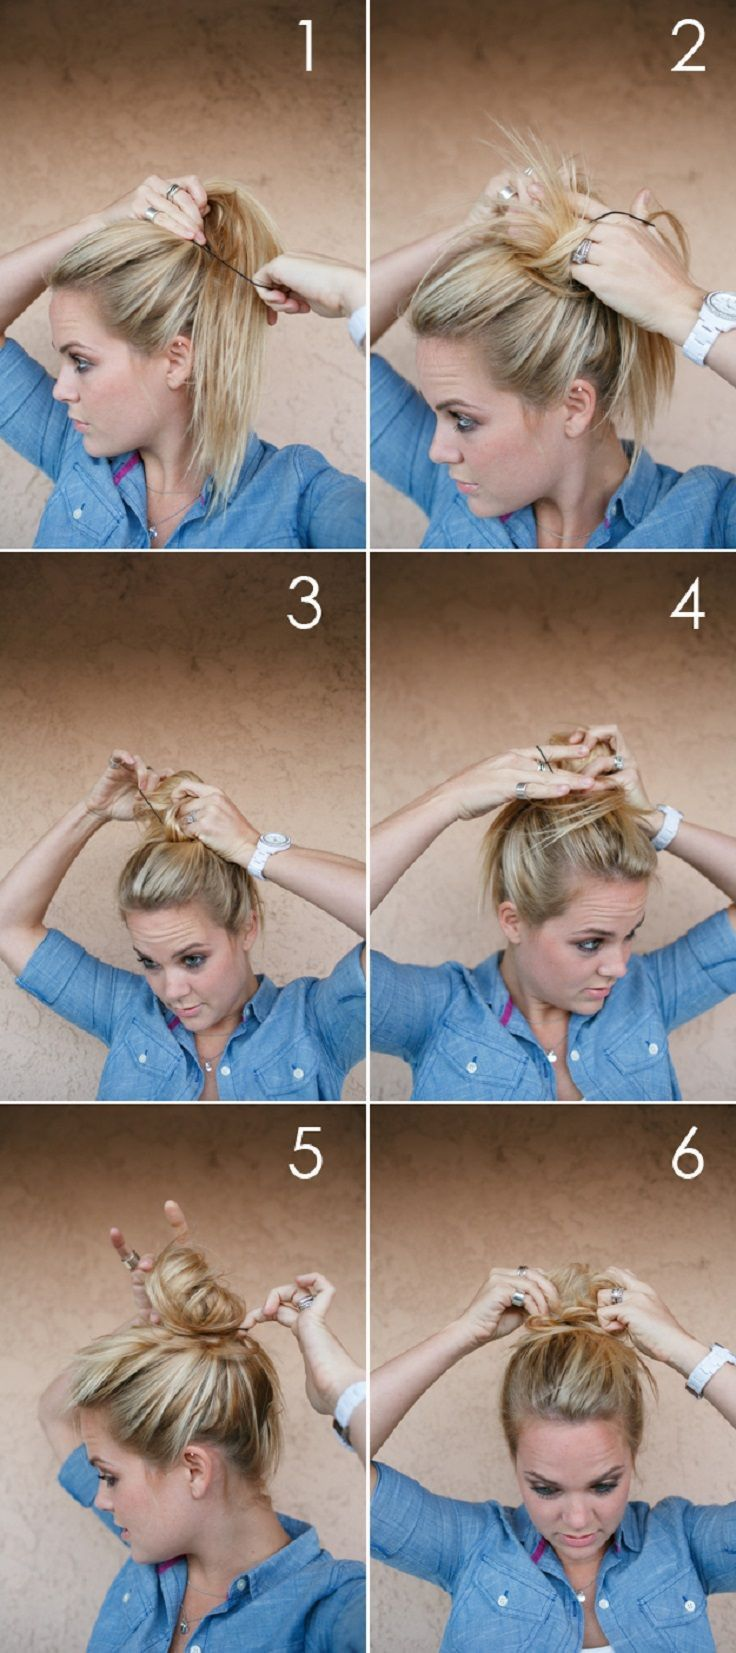 5-Minute Hairdos That Will Transform Your Morning Routine1